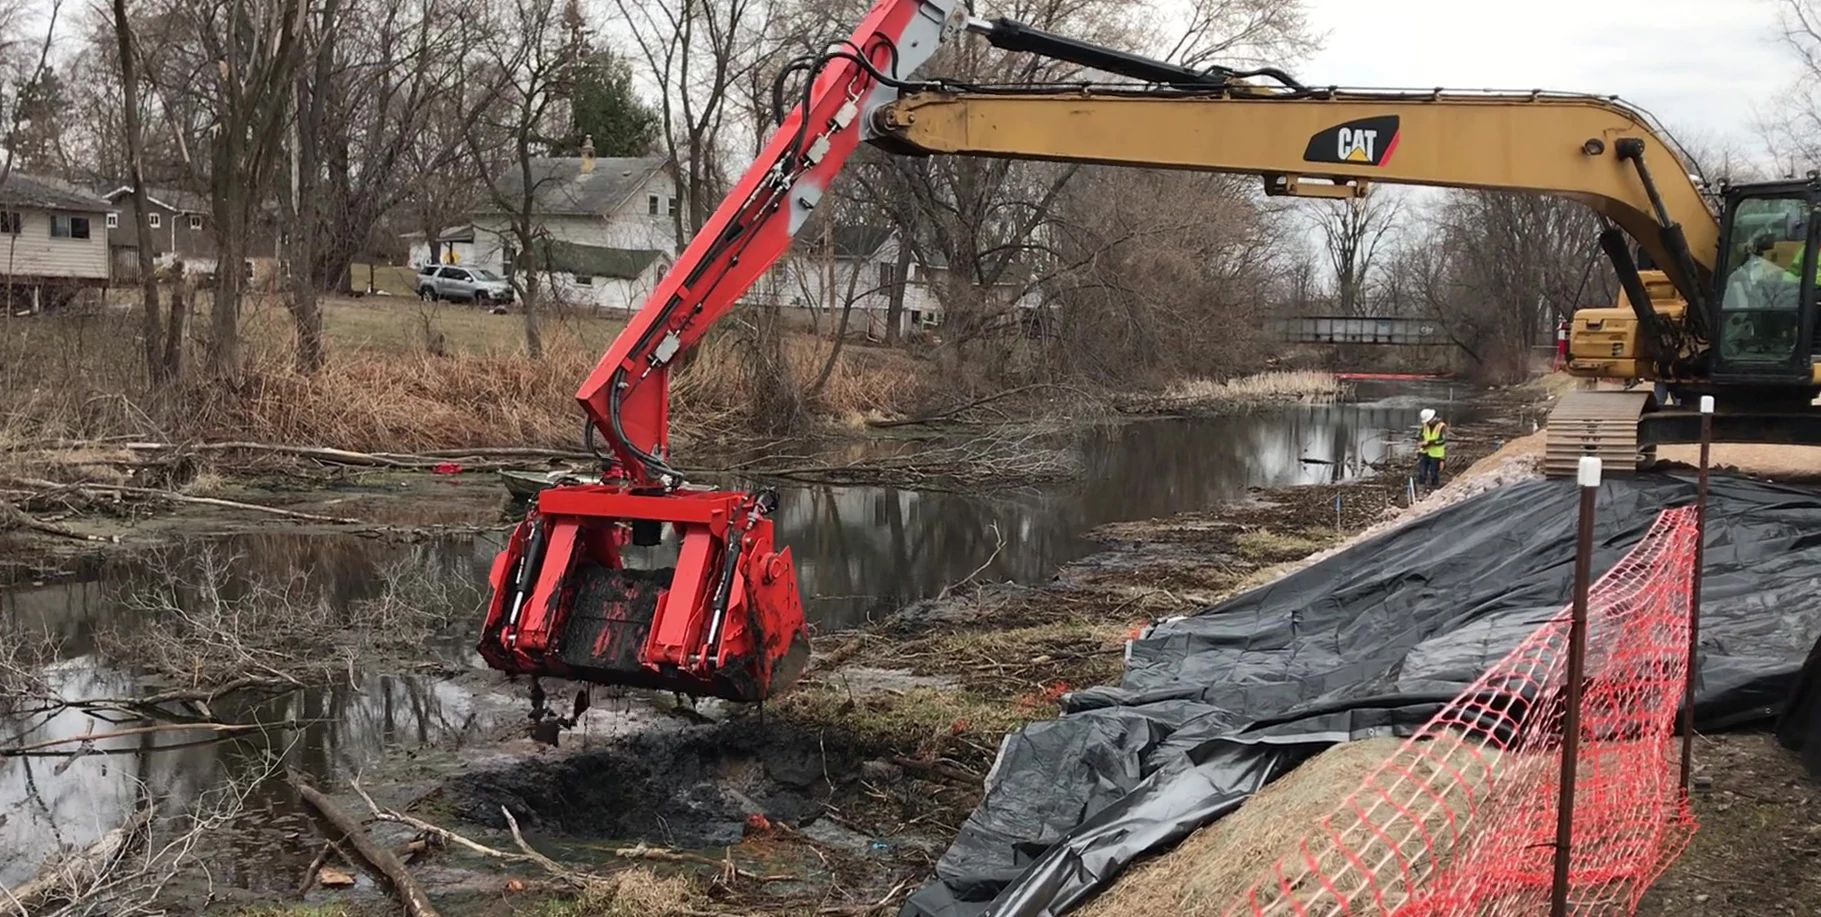 An image of dredging at the Portage Canal in March 2021.